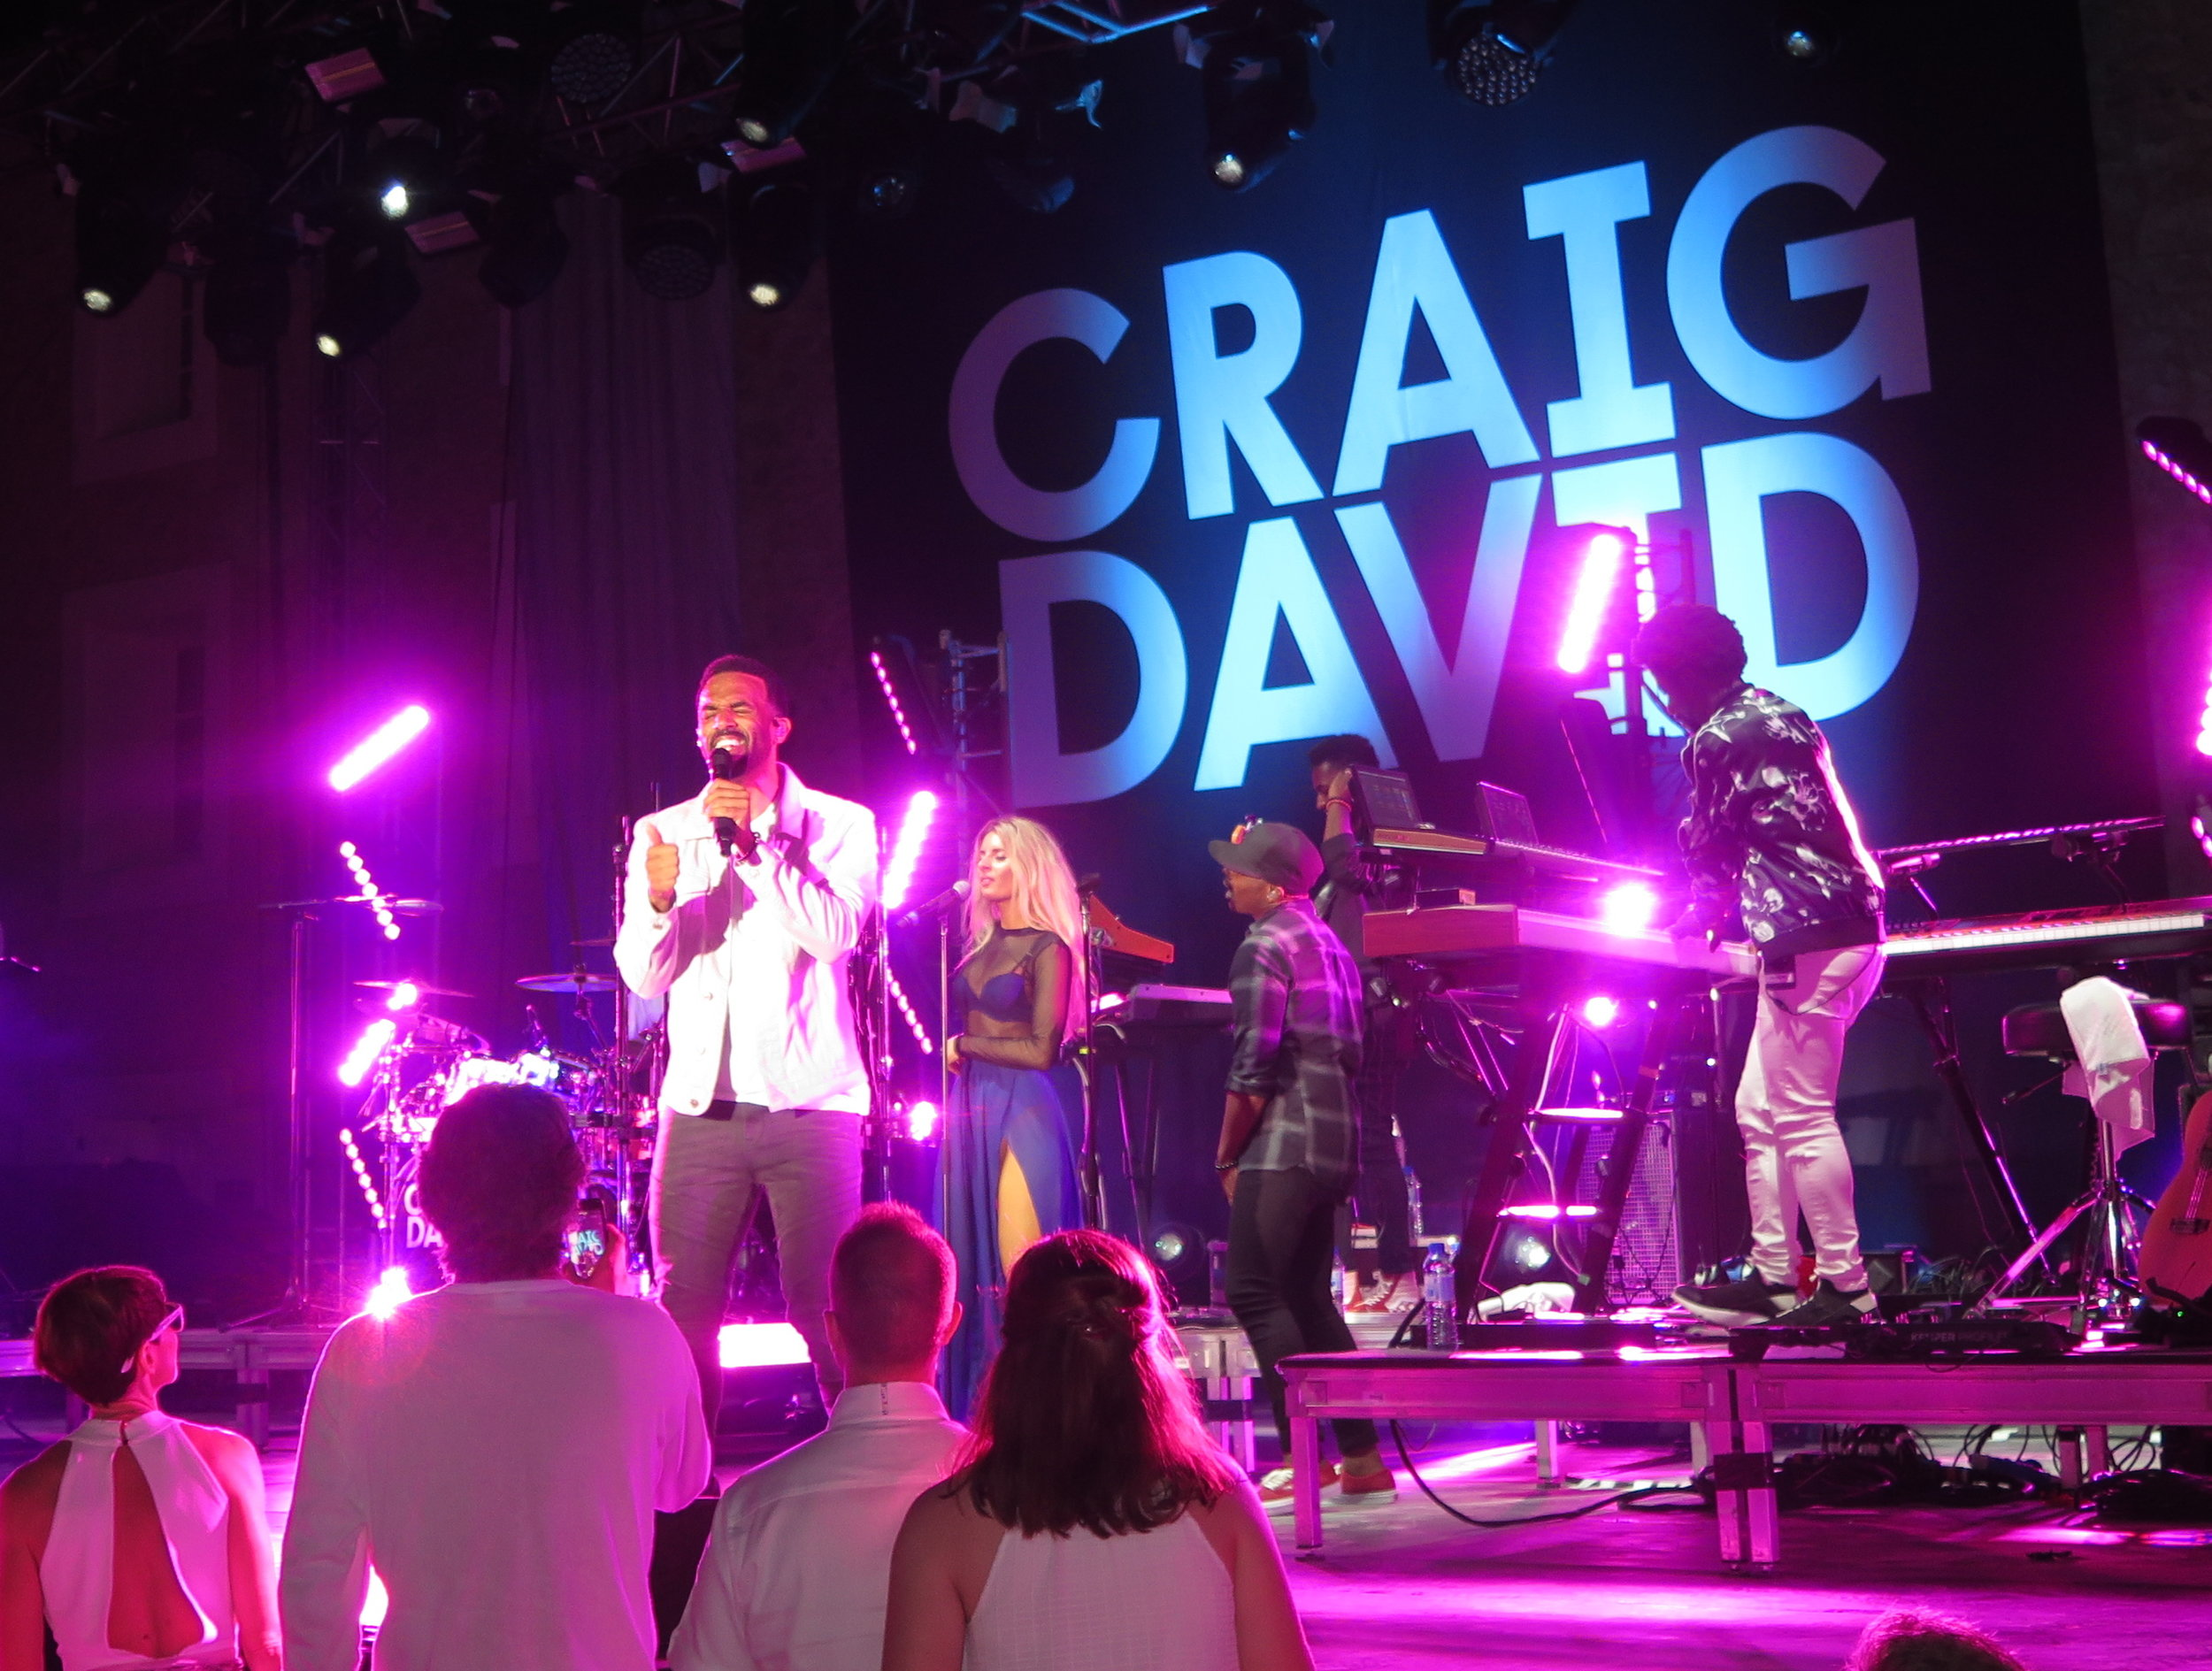 Craig David singing. Photo by Selma Fonseca